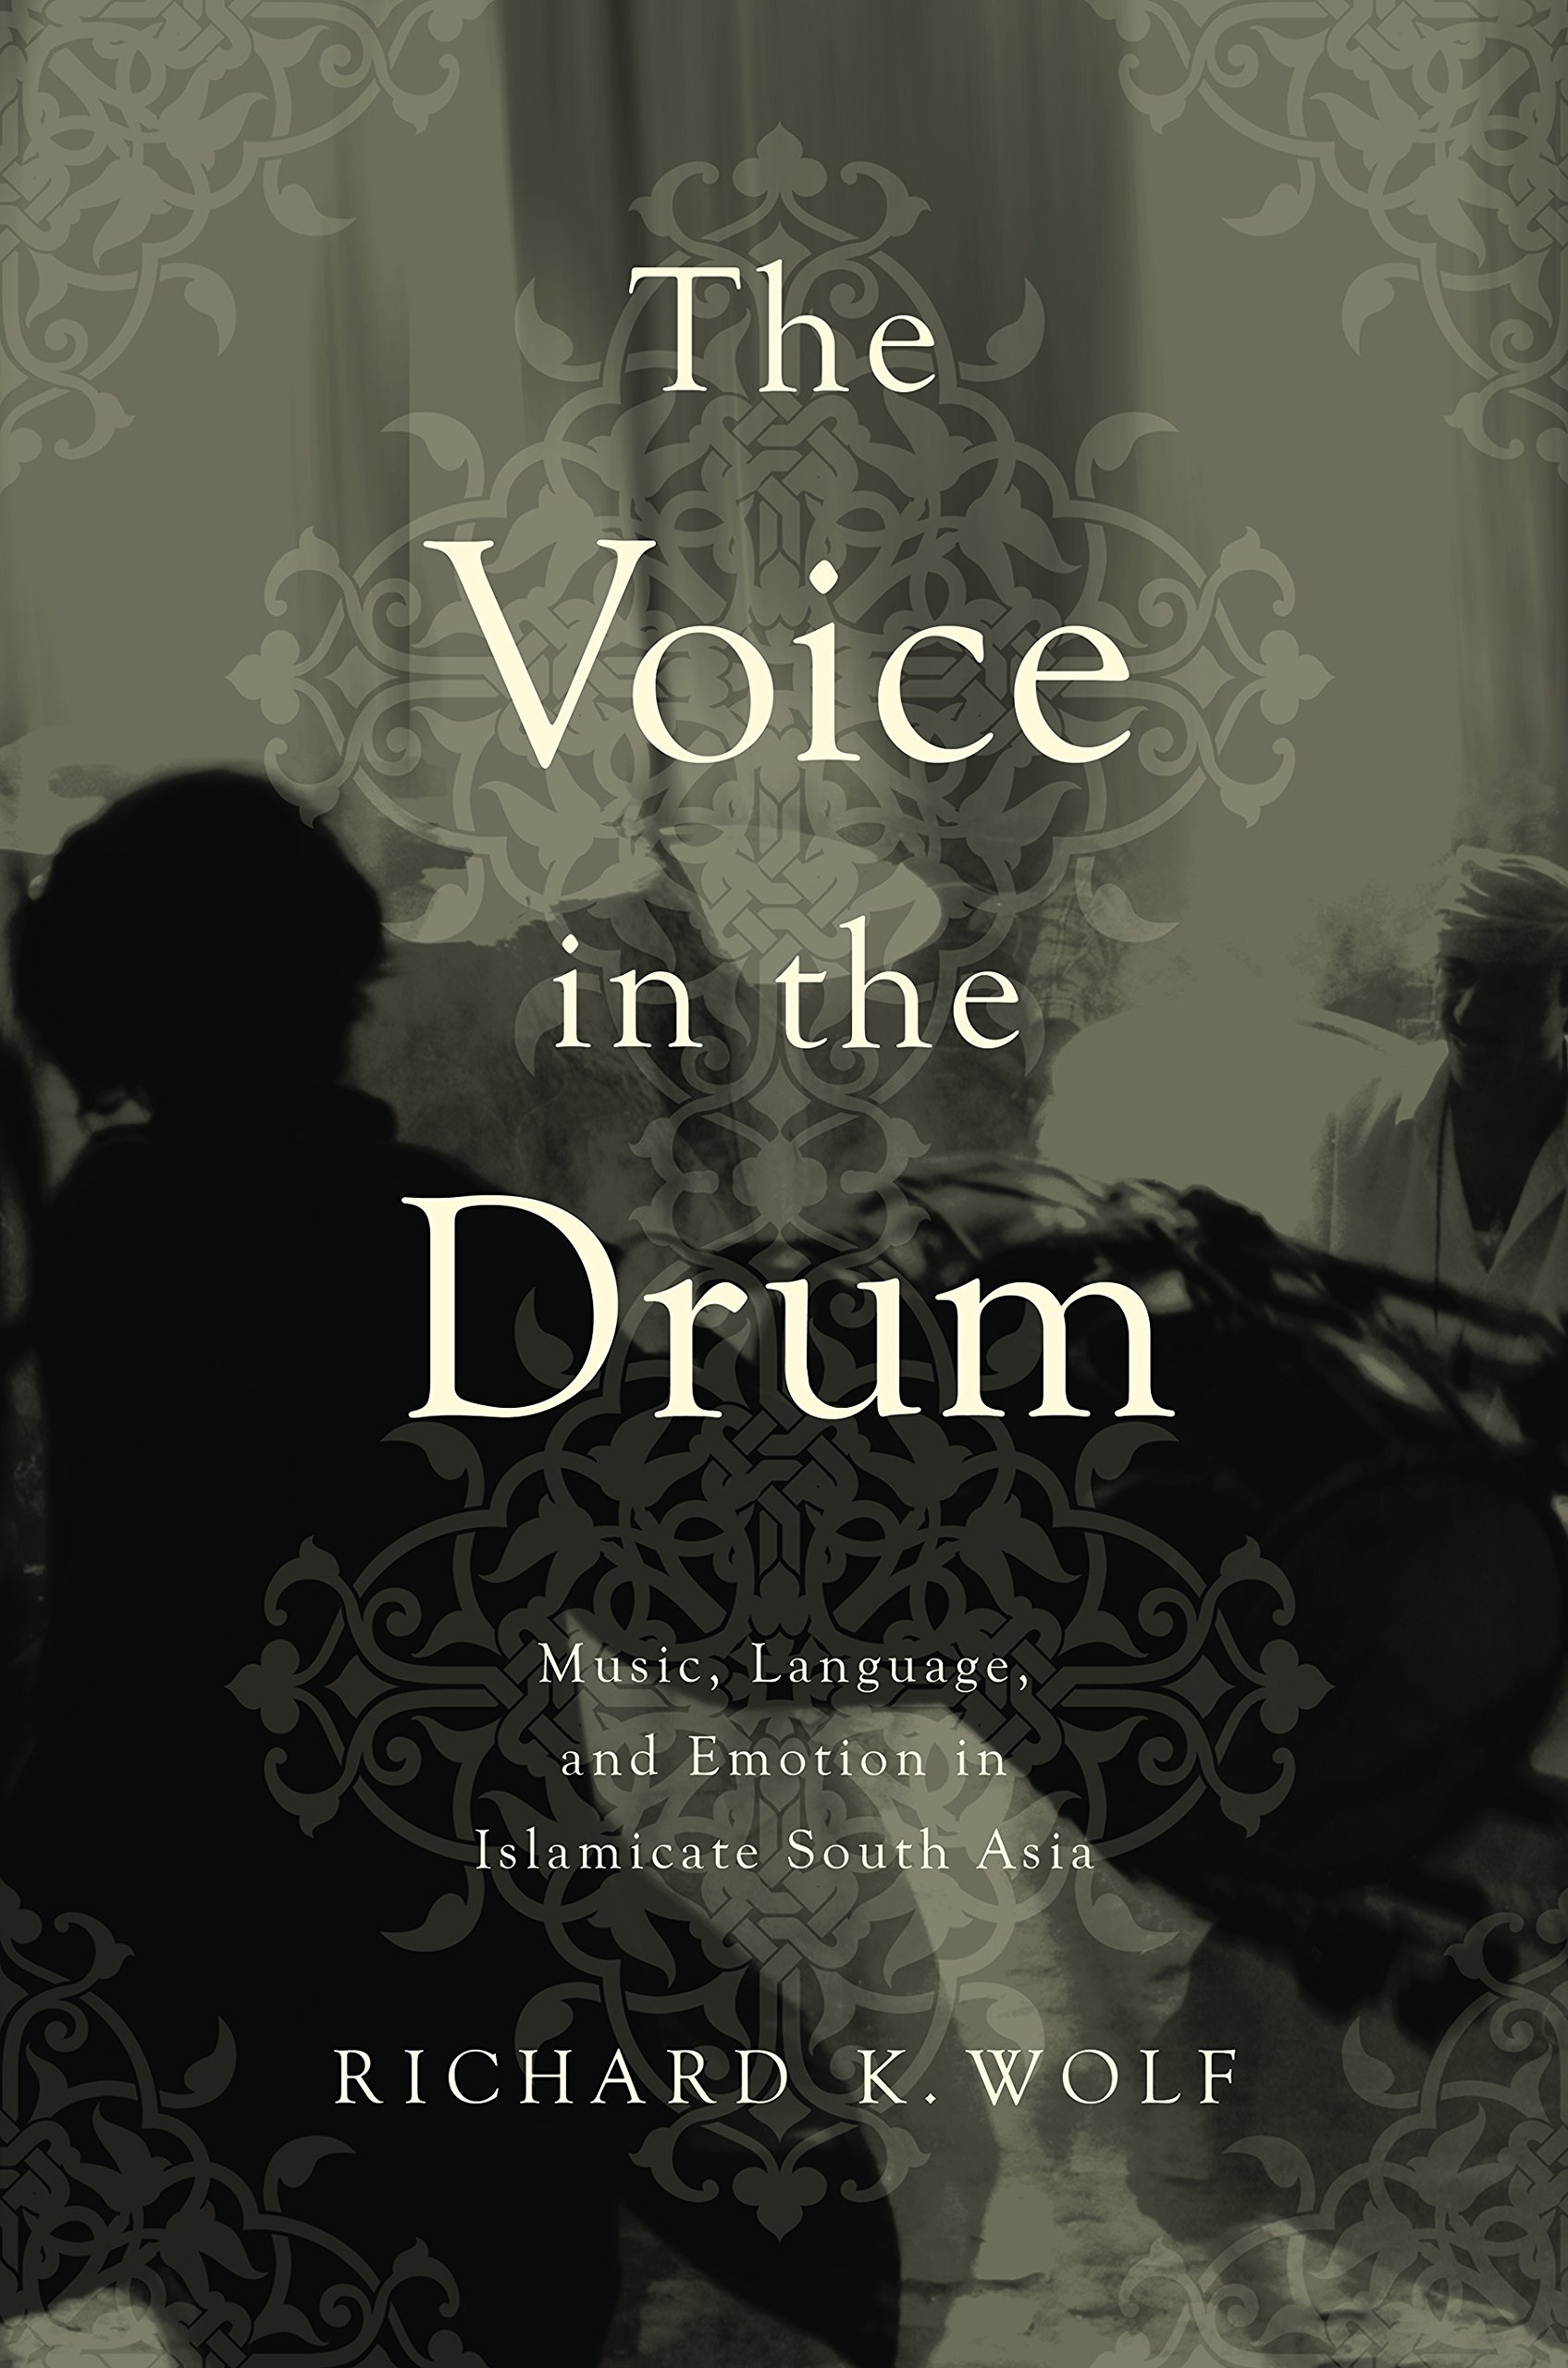 The Voice in the Drum: Music, Language, and Emotion in Islamicate South Asia by University of Illinois Press